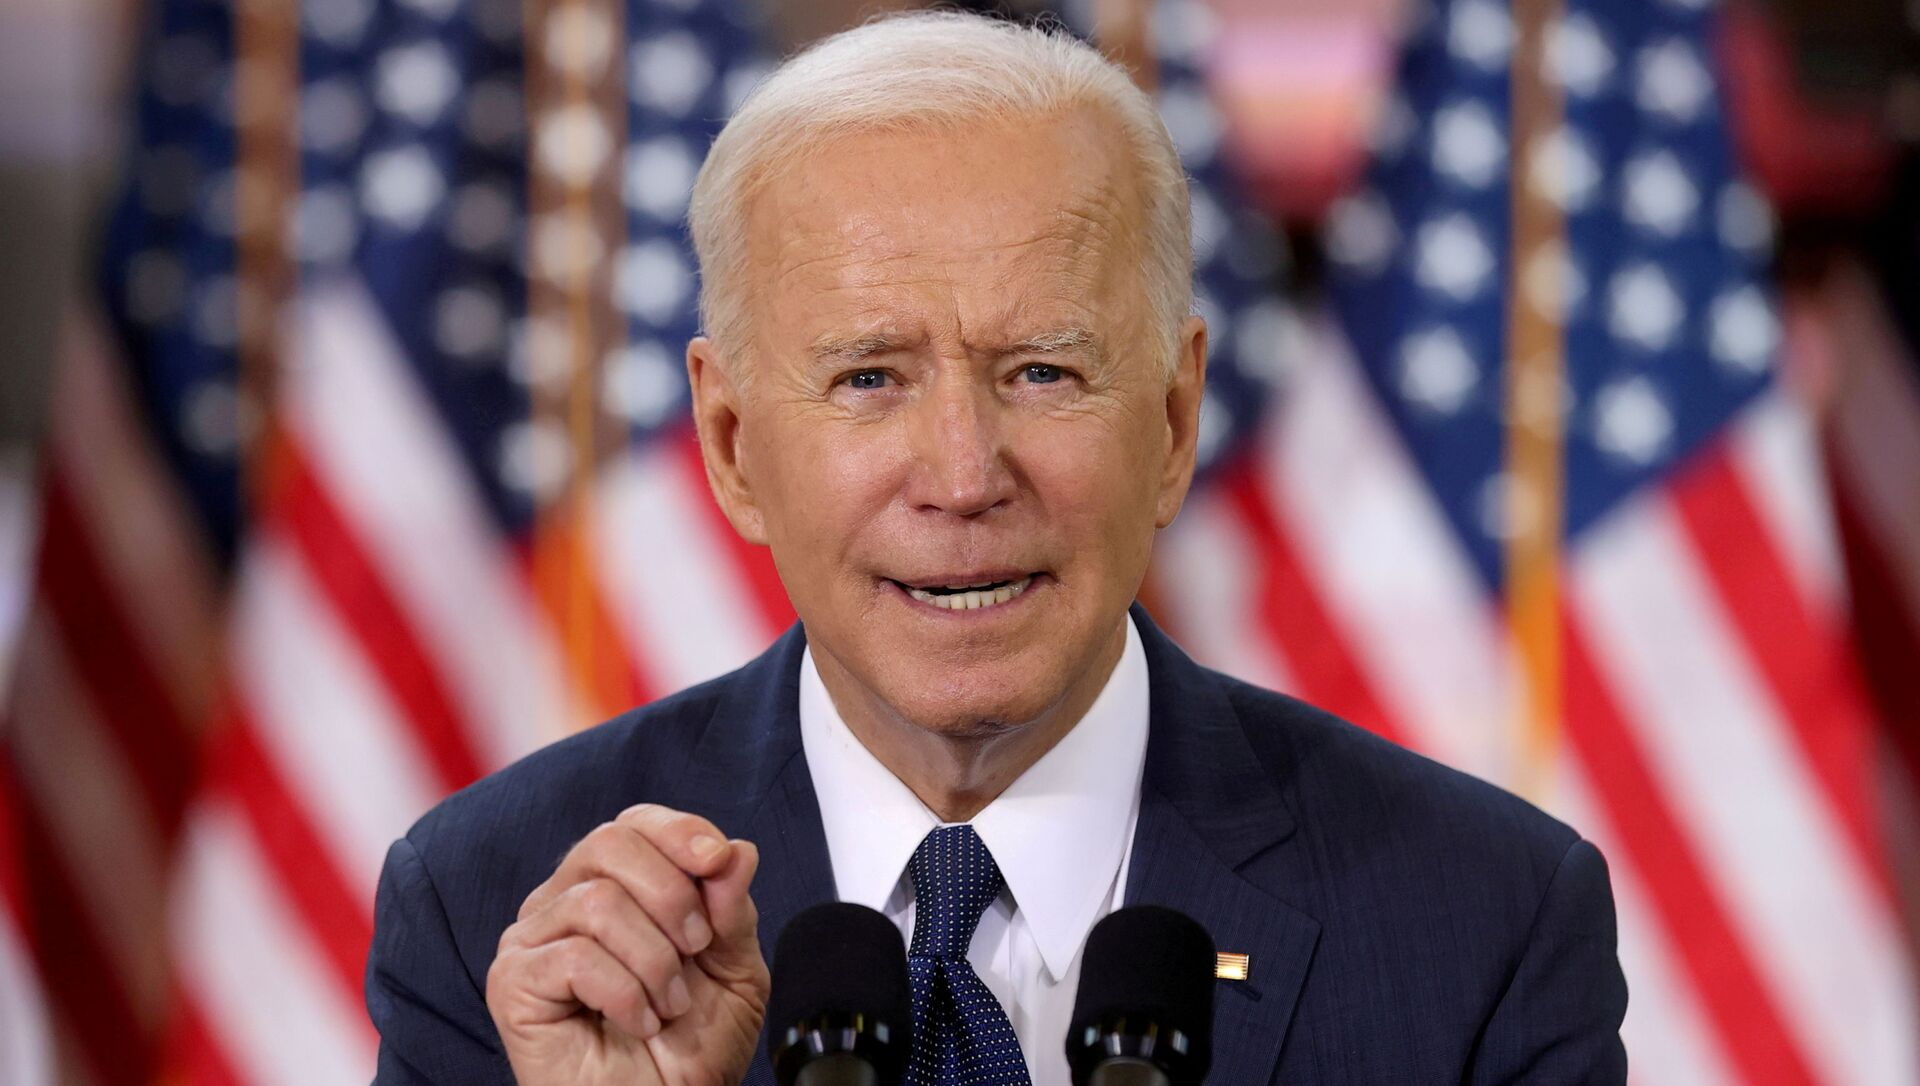 FILE PHOTO: U.S. President Joe Biden speaks about his infrastructure plan during an event to tout the plan at Carpenters Pittsburgh Training Center in Pittsburgh, Pennsylvania, U.S., March 31, 2021.  - Sputnik International, 1920, 30.04.2021